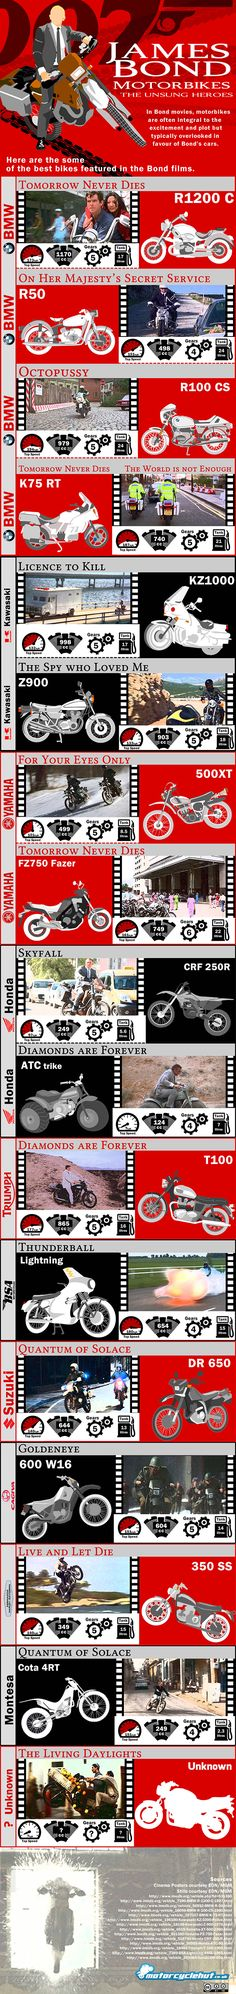 Motorcycle of James Bond Infographic